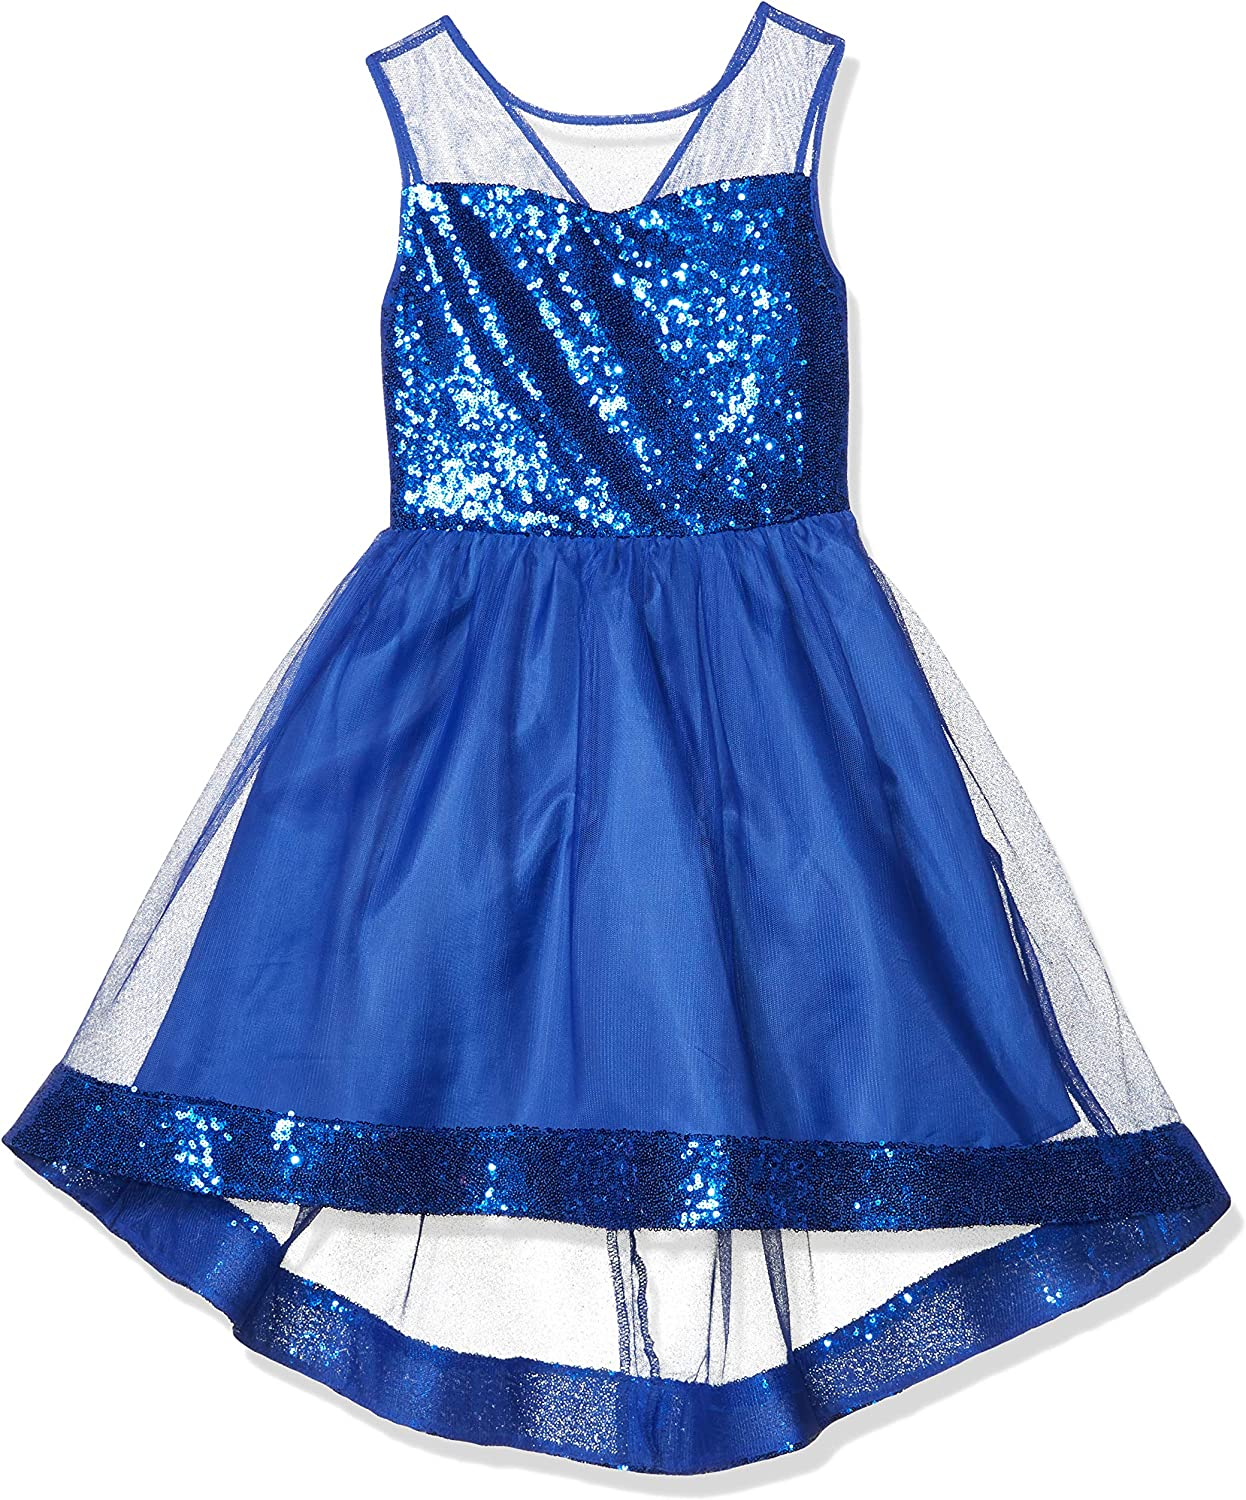 Amy Byer Girls' At the price Some reservation Dress with Bodice Sequin Illusion Hem and